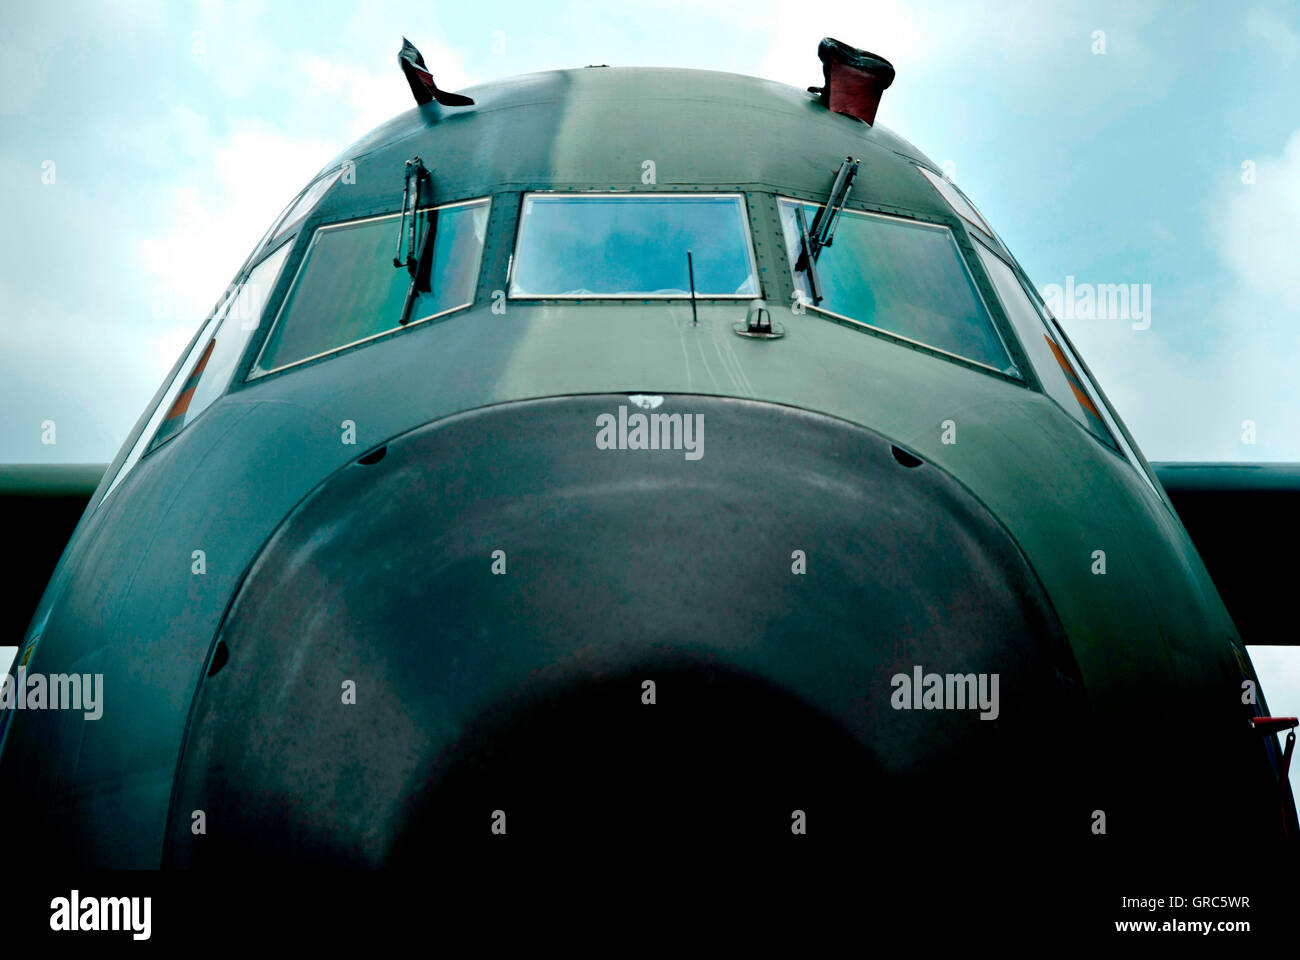 Aircraft, Military, Transport - Stock Image